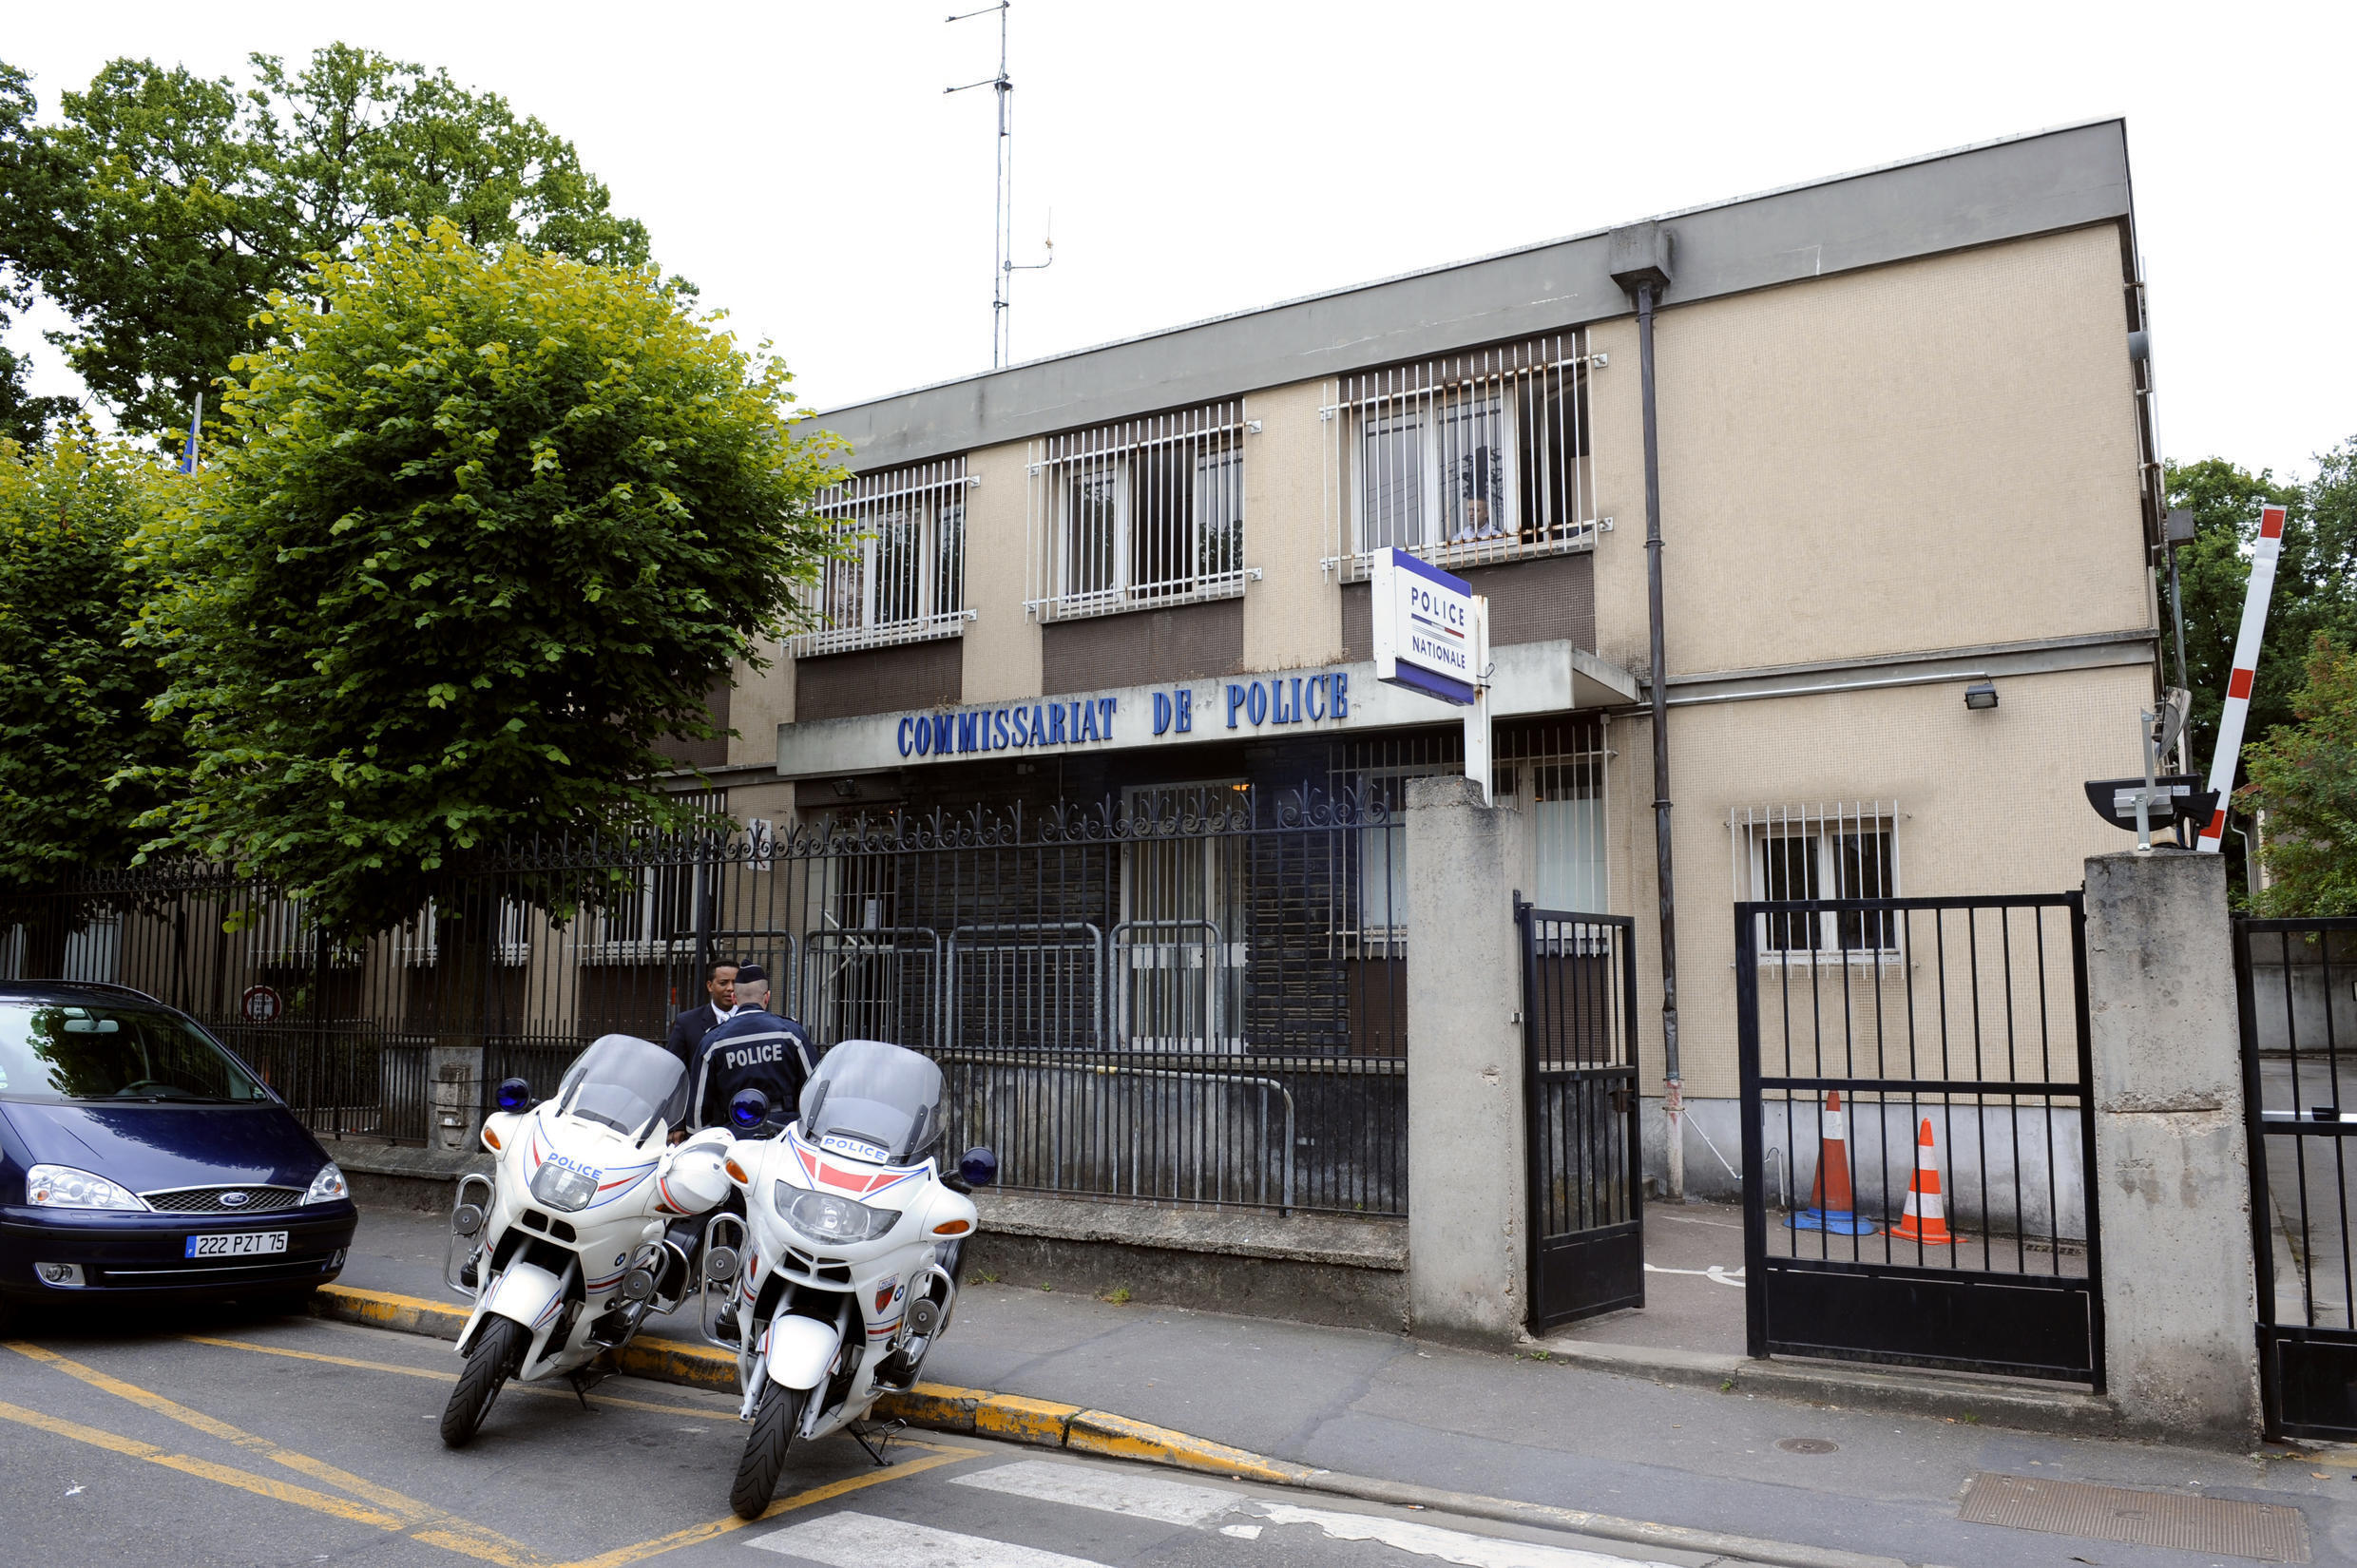 The police station of Aulnay-sous-Bois, near Paris.